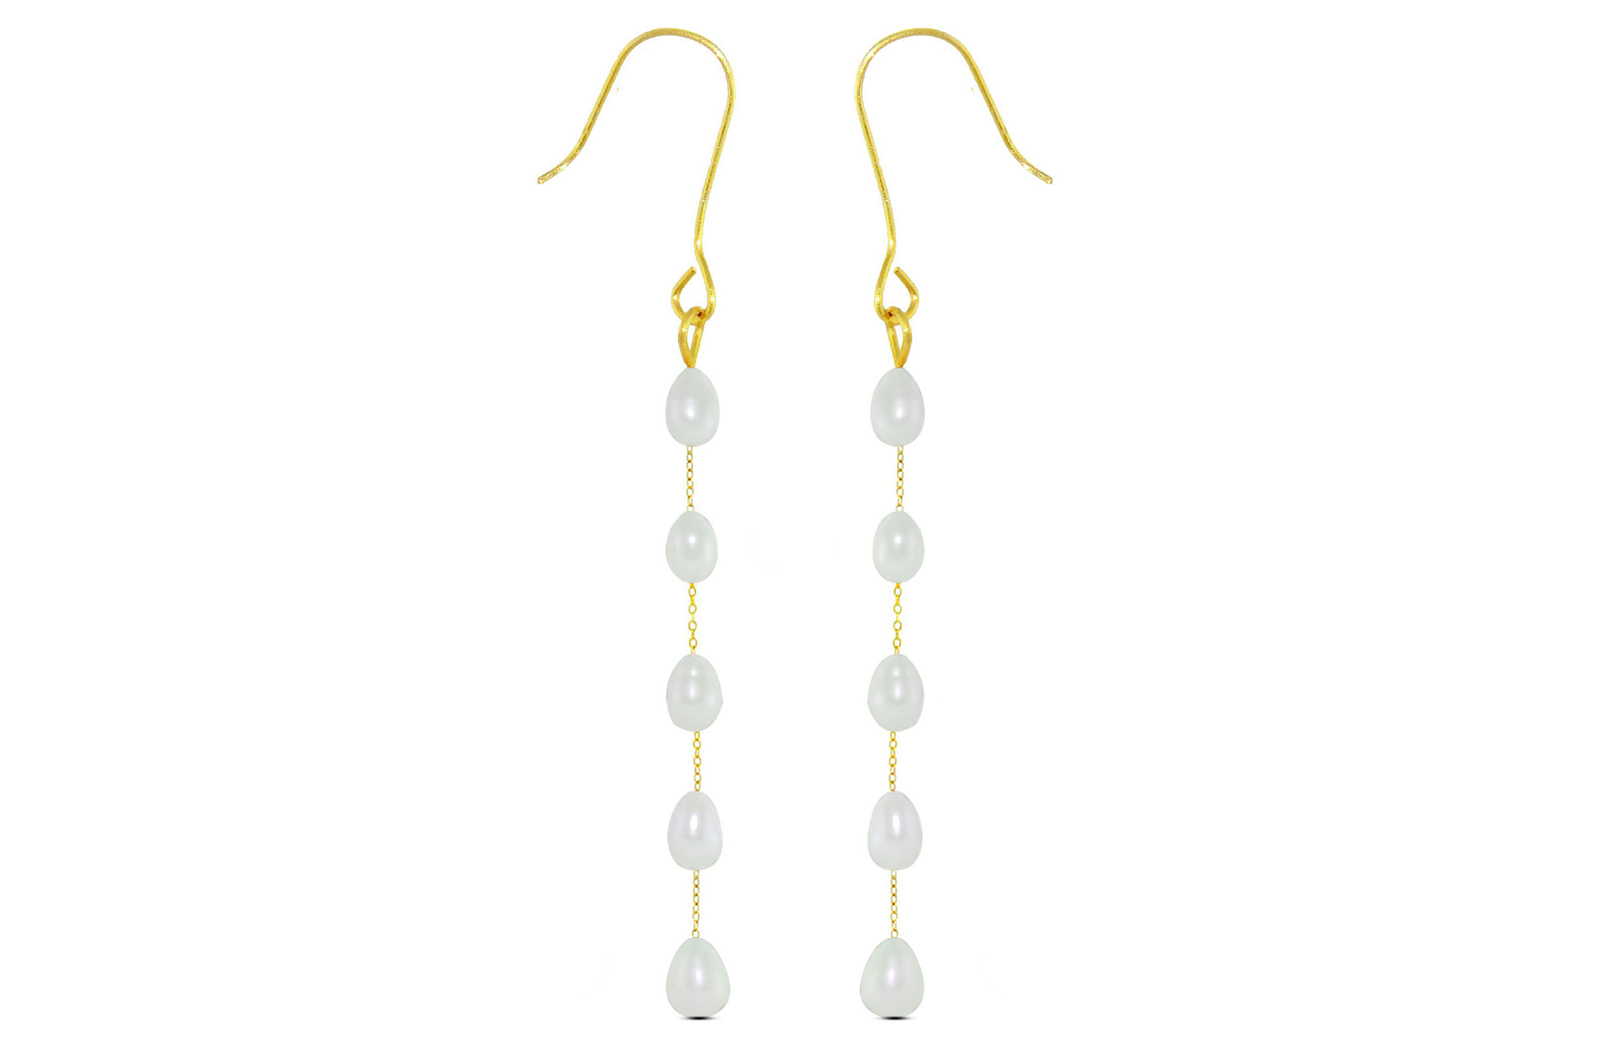 Vera Perla 10K Gold White Pearls Opera Drop Earrings